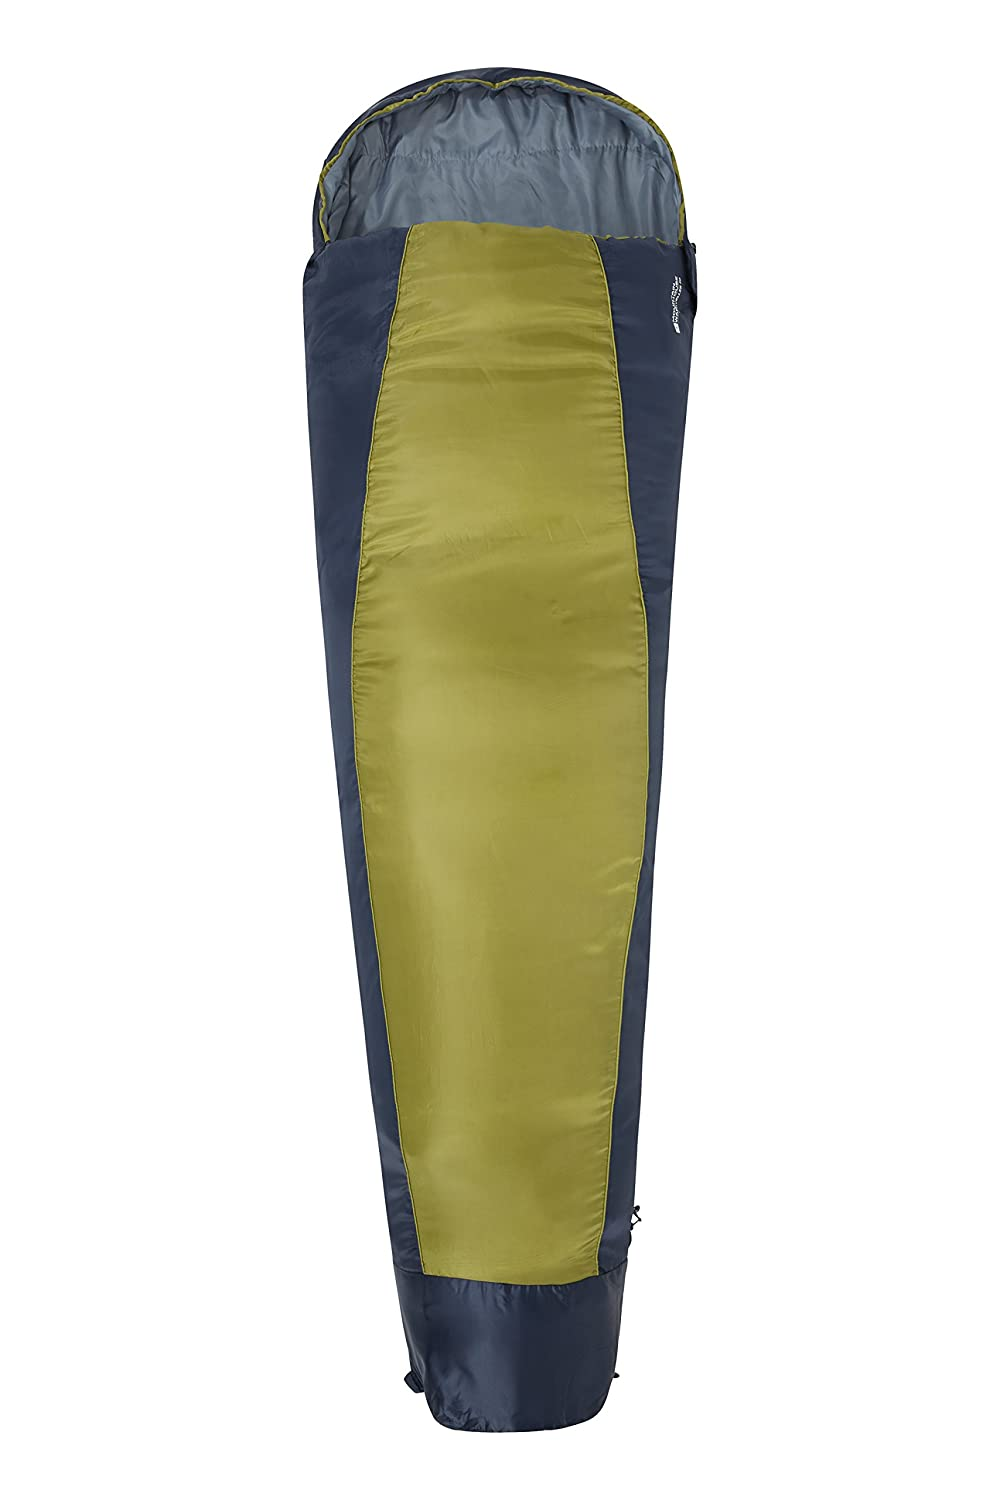 Mountain Warehouse Traveller 50 Sleeping Bag – 防風、Mummy Shapedバッグwith Innerポケット – Perfect for the Summer Months – 220 cm x 80 cm X 50 cm B00KYHZJFK ライムグリーン ライムグリーン